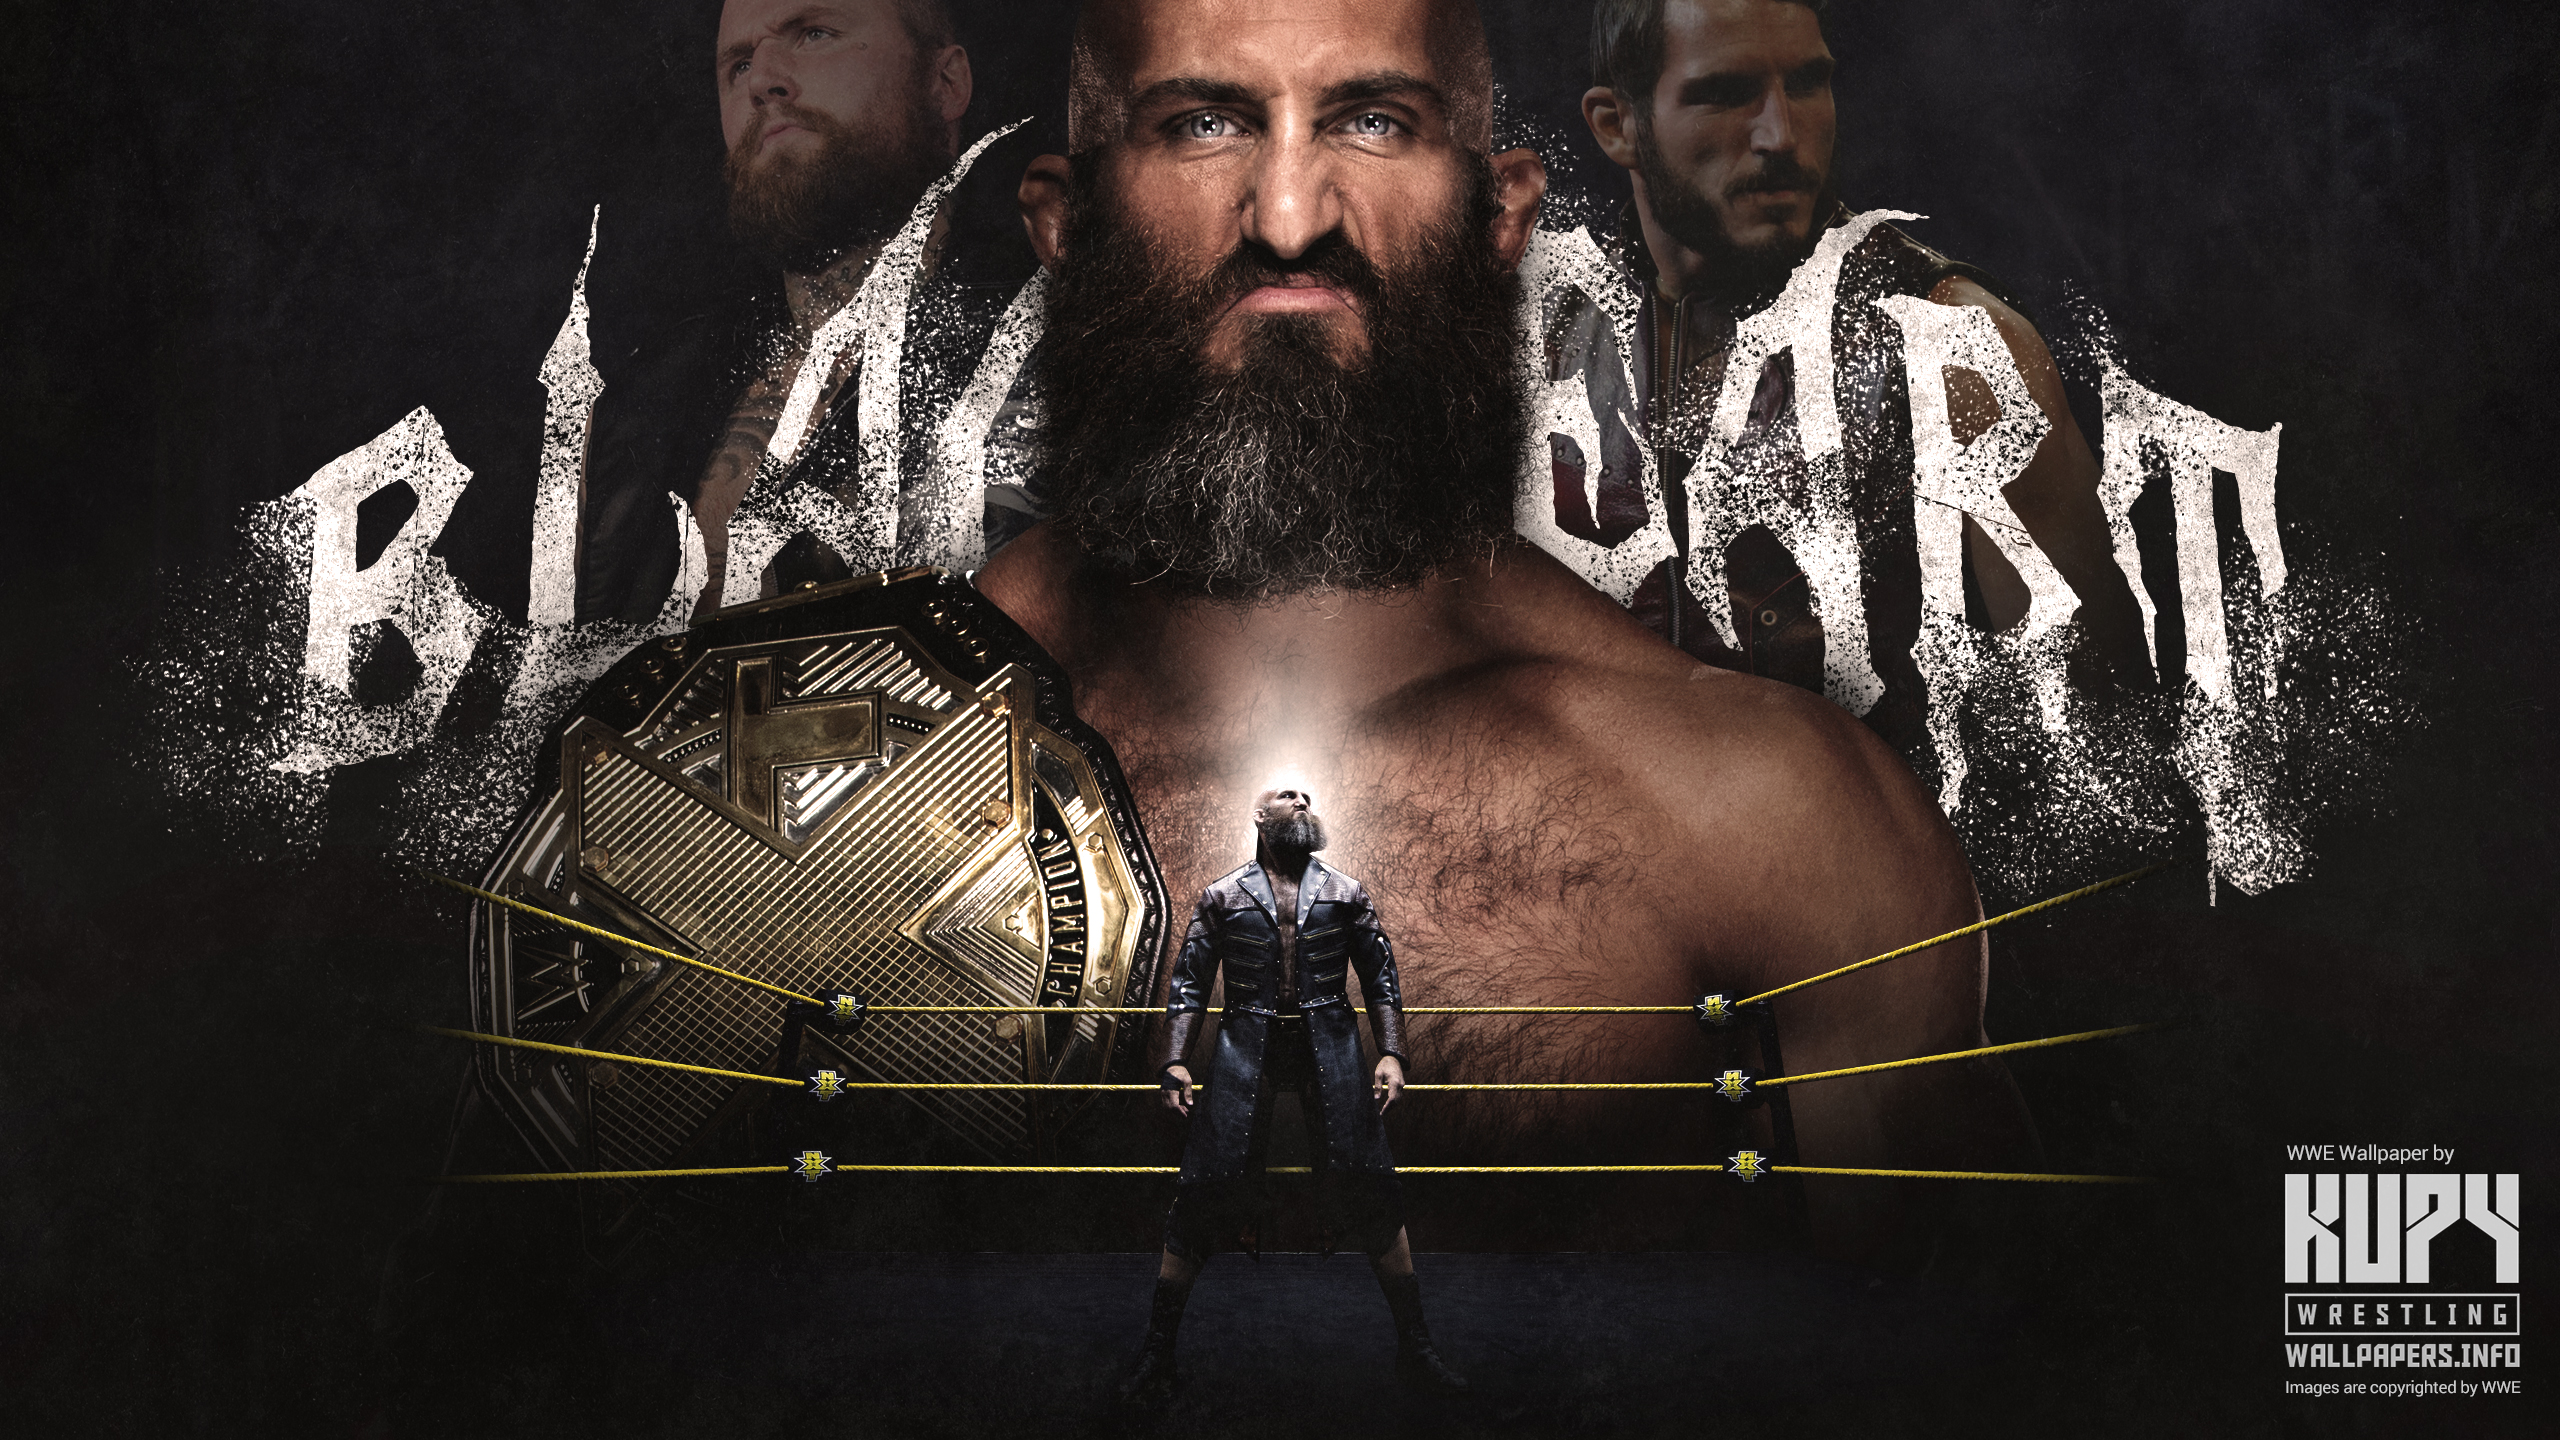 Kupy Wrestling Wallpapers The Latest Source For Your Wwe Wrestling Wallpaper Needs Mobile Hd And 4k Resolutions Available Nxt Archives Kupy Wrestling Wallpapers The Latest Source For Your Wwe